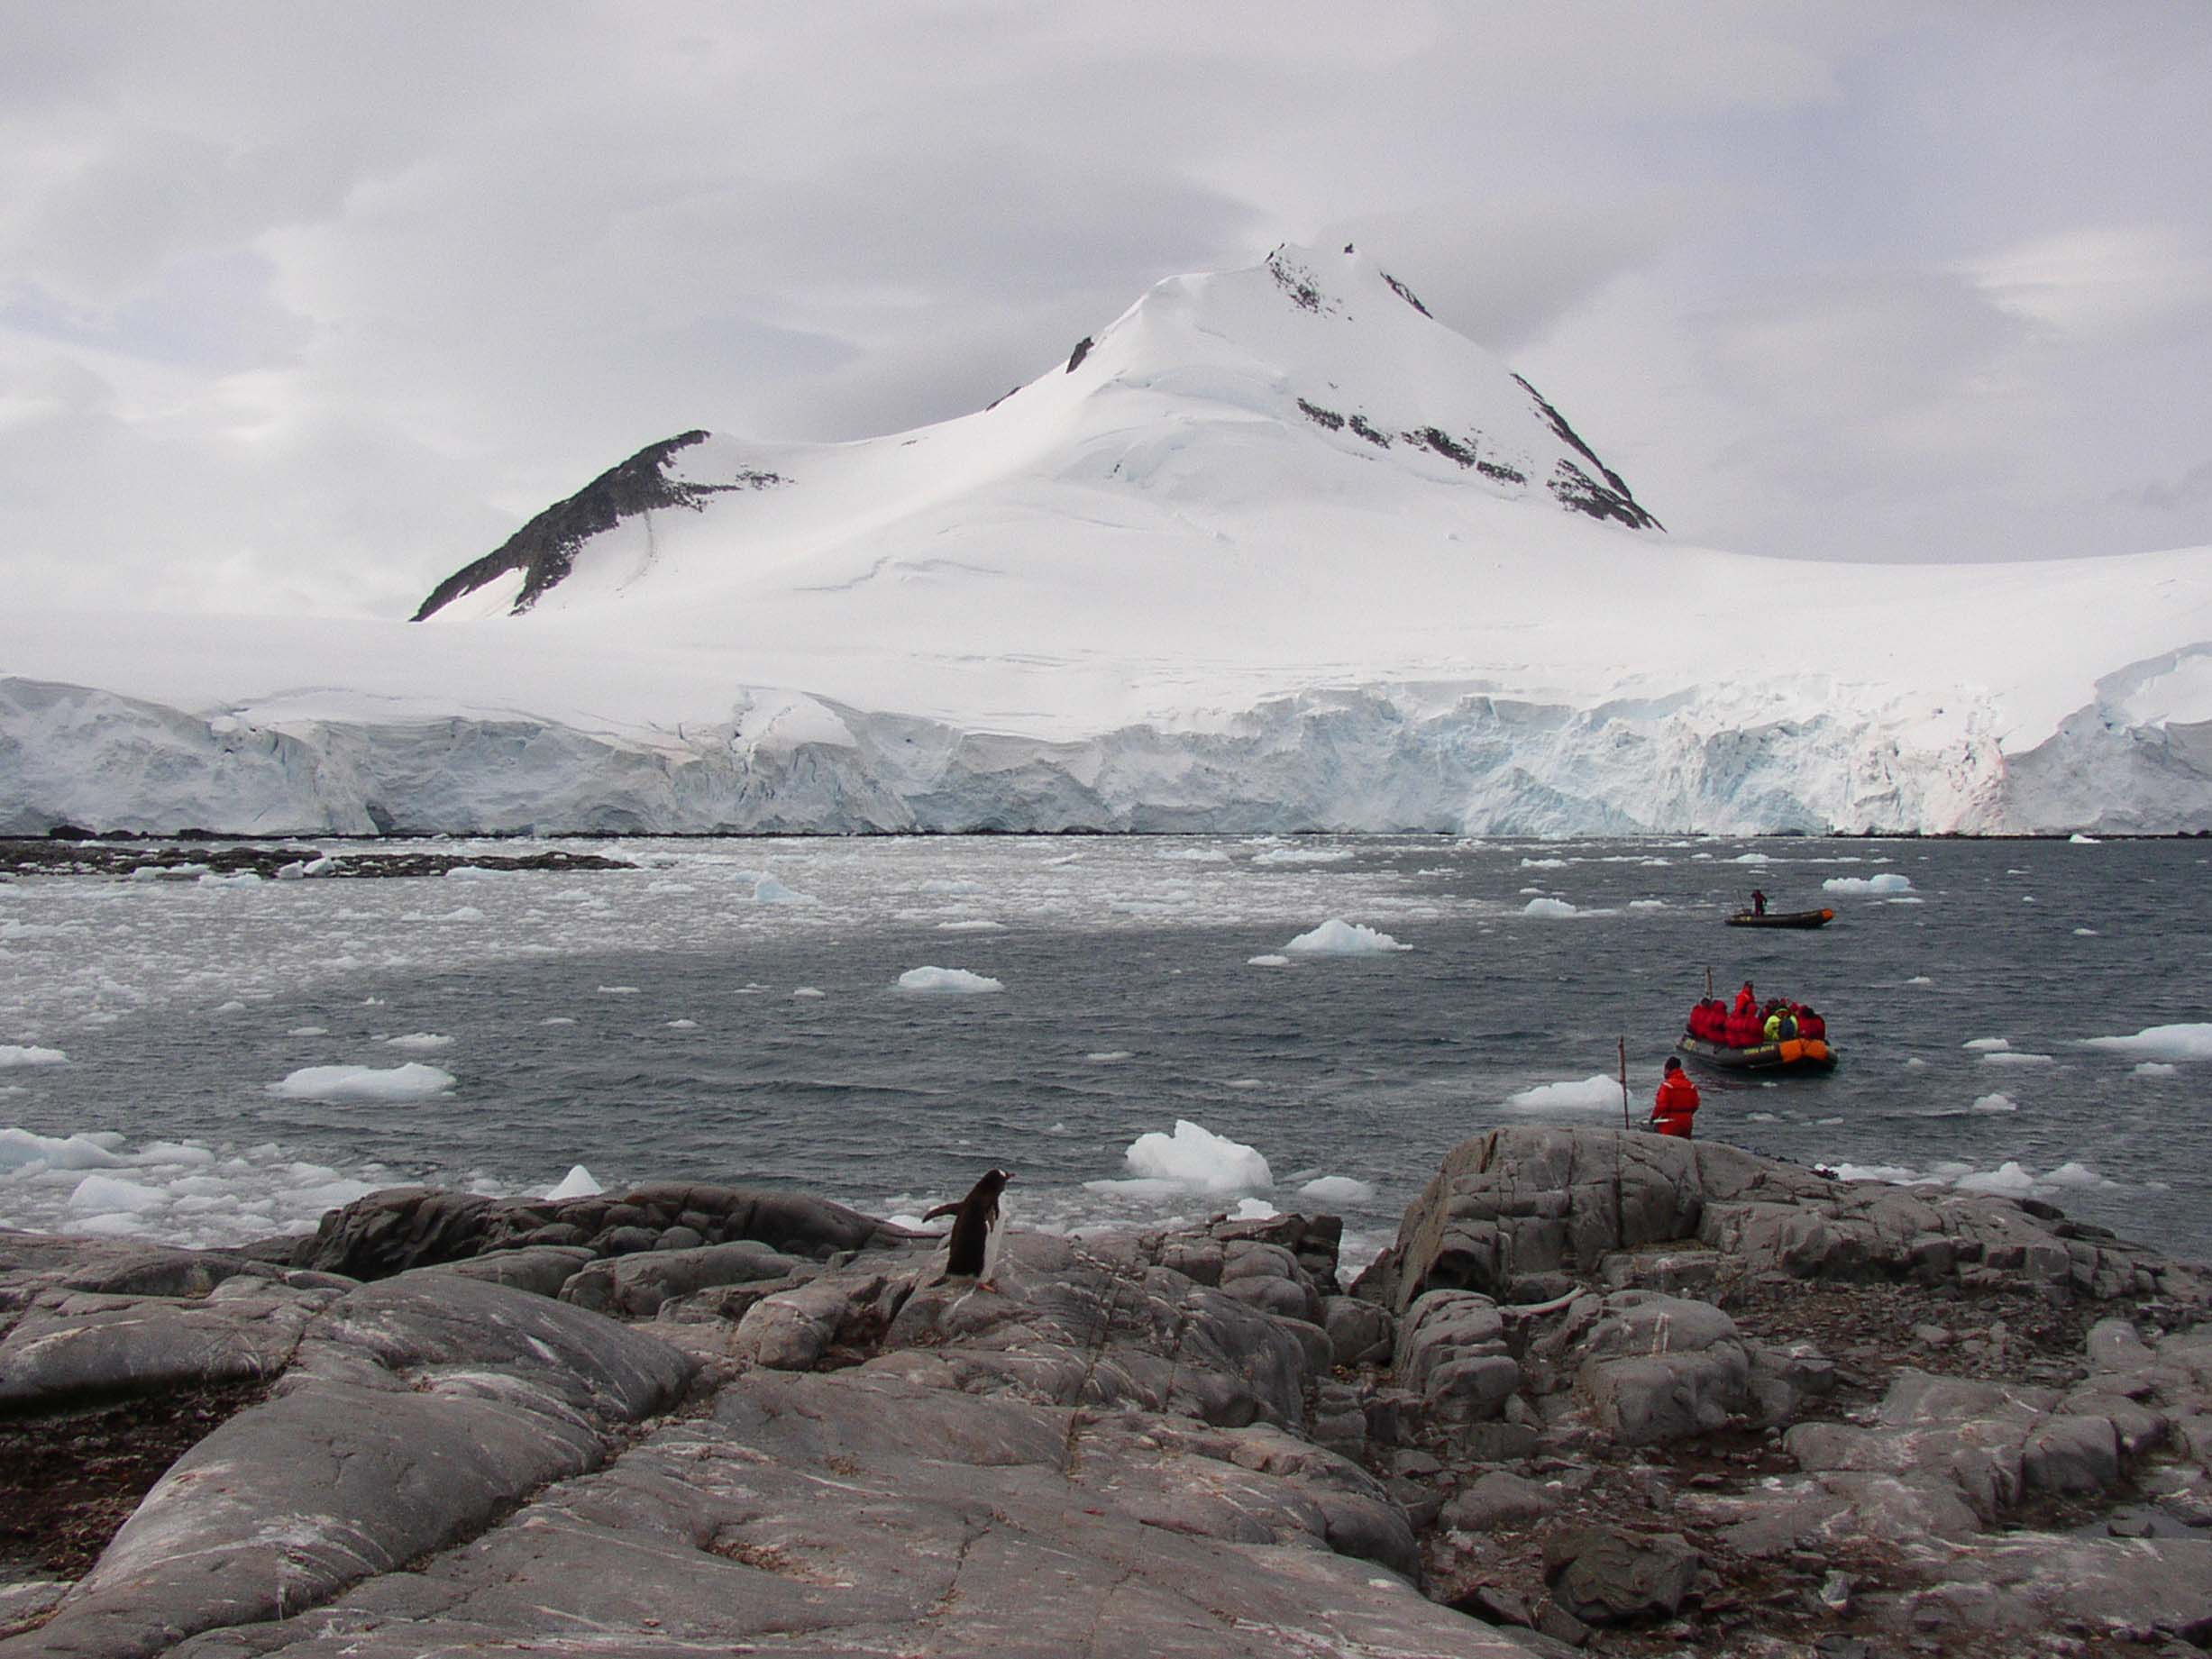 Rocky shore with a penguin, small boats and icebergs beyond